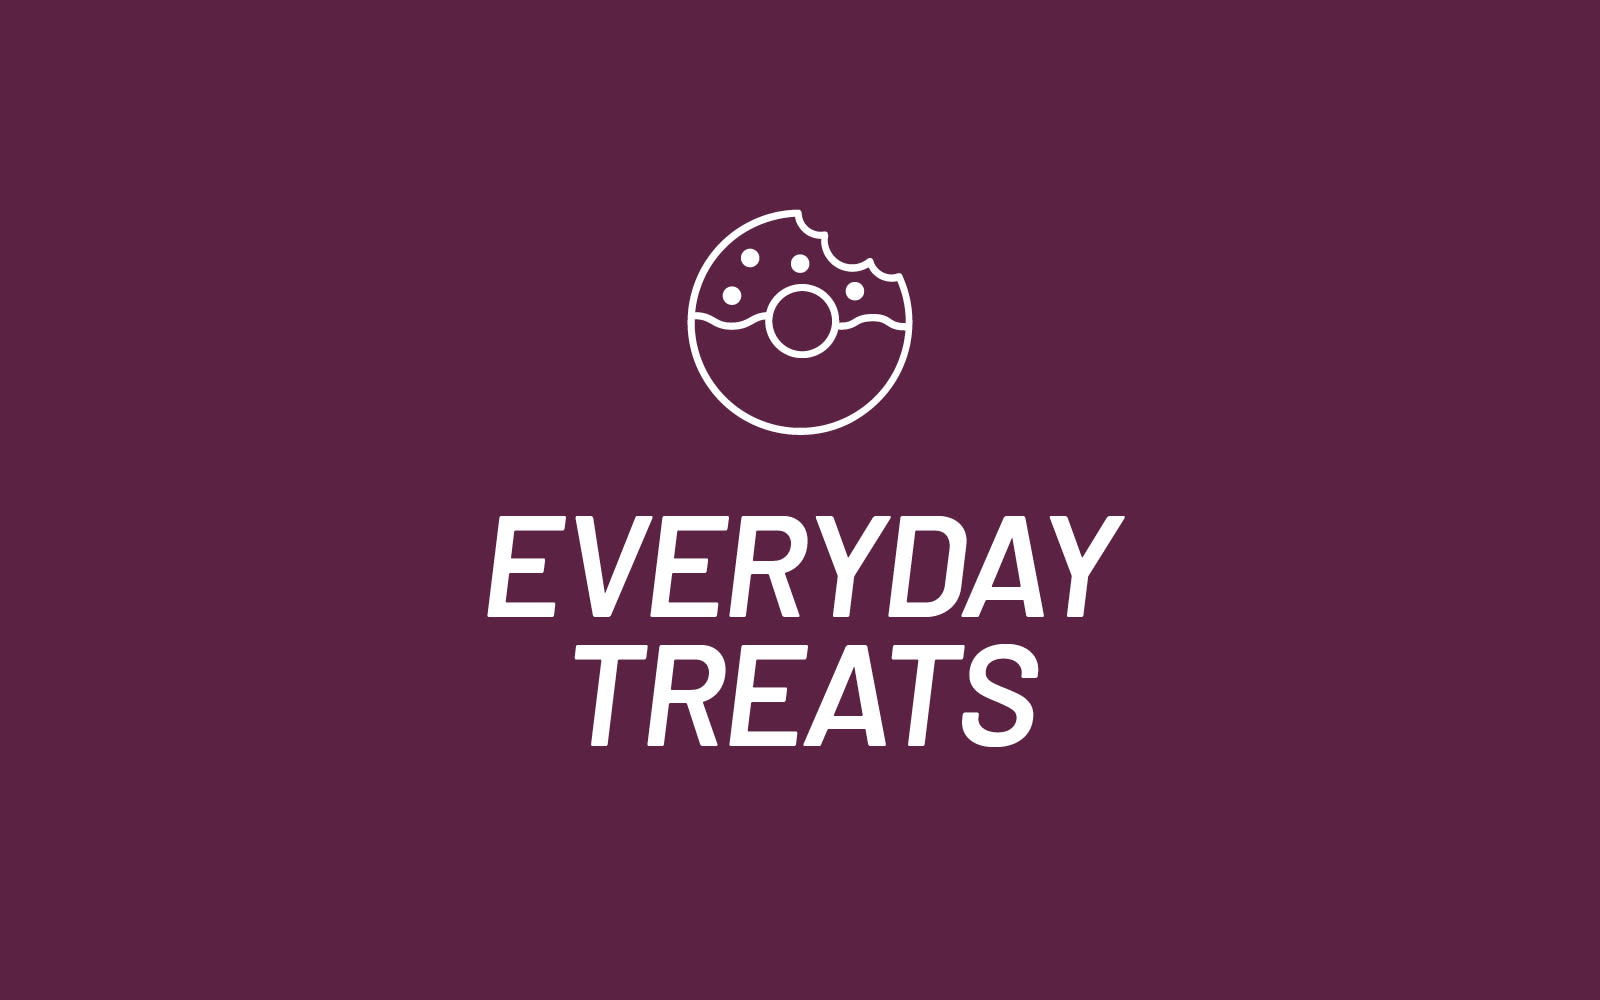 Virgin Red Reward Category Everyday Treats